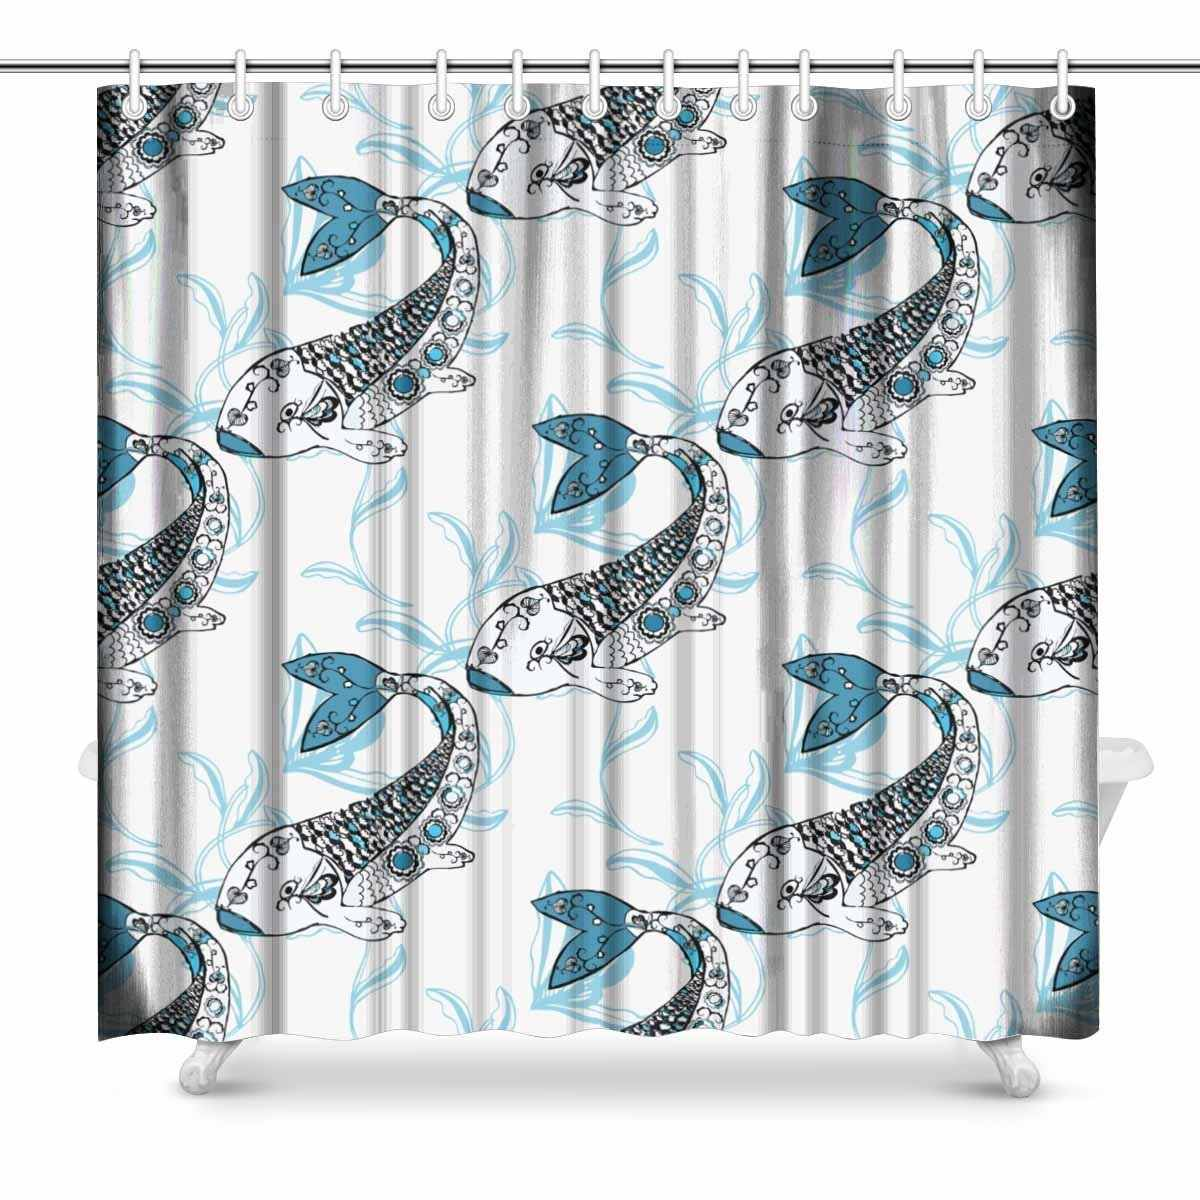 Aplysia Koi Chinese Carp Hand Drown Doodle Pattern Fabric Bathroom Shower Curtain Decor Set with Hooks 72 x 72 Inches